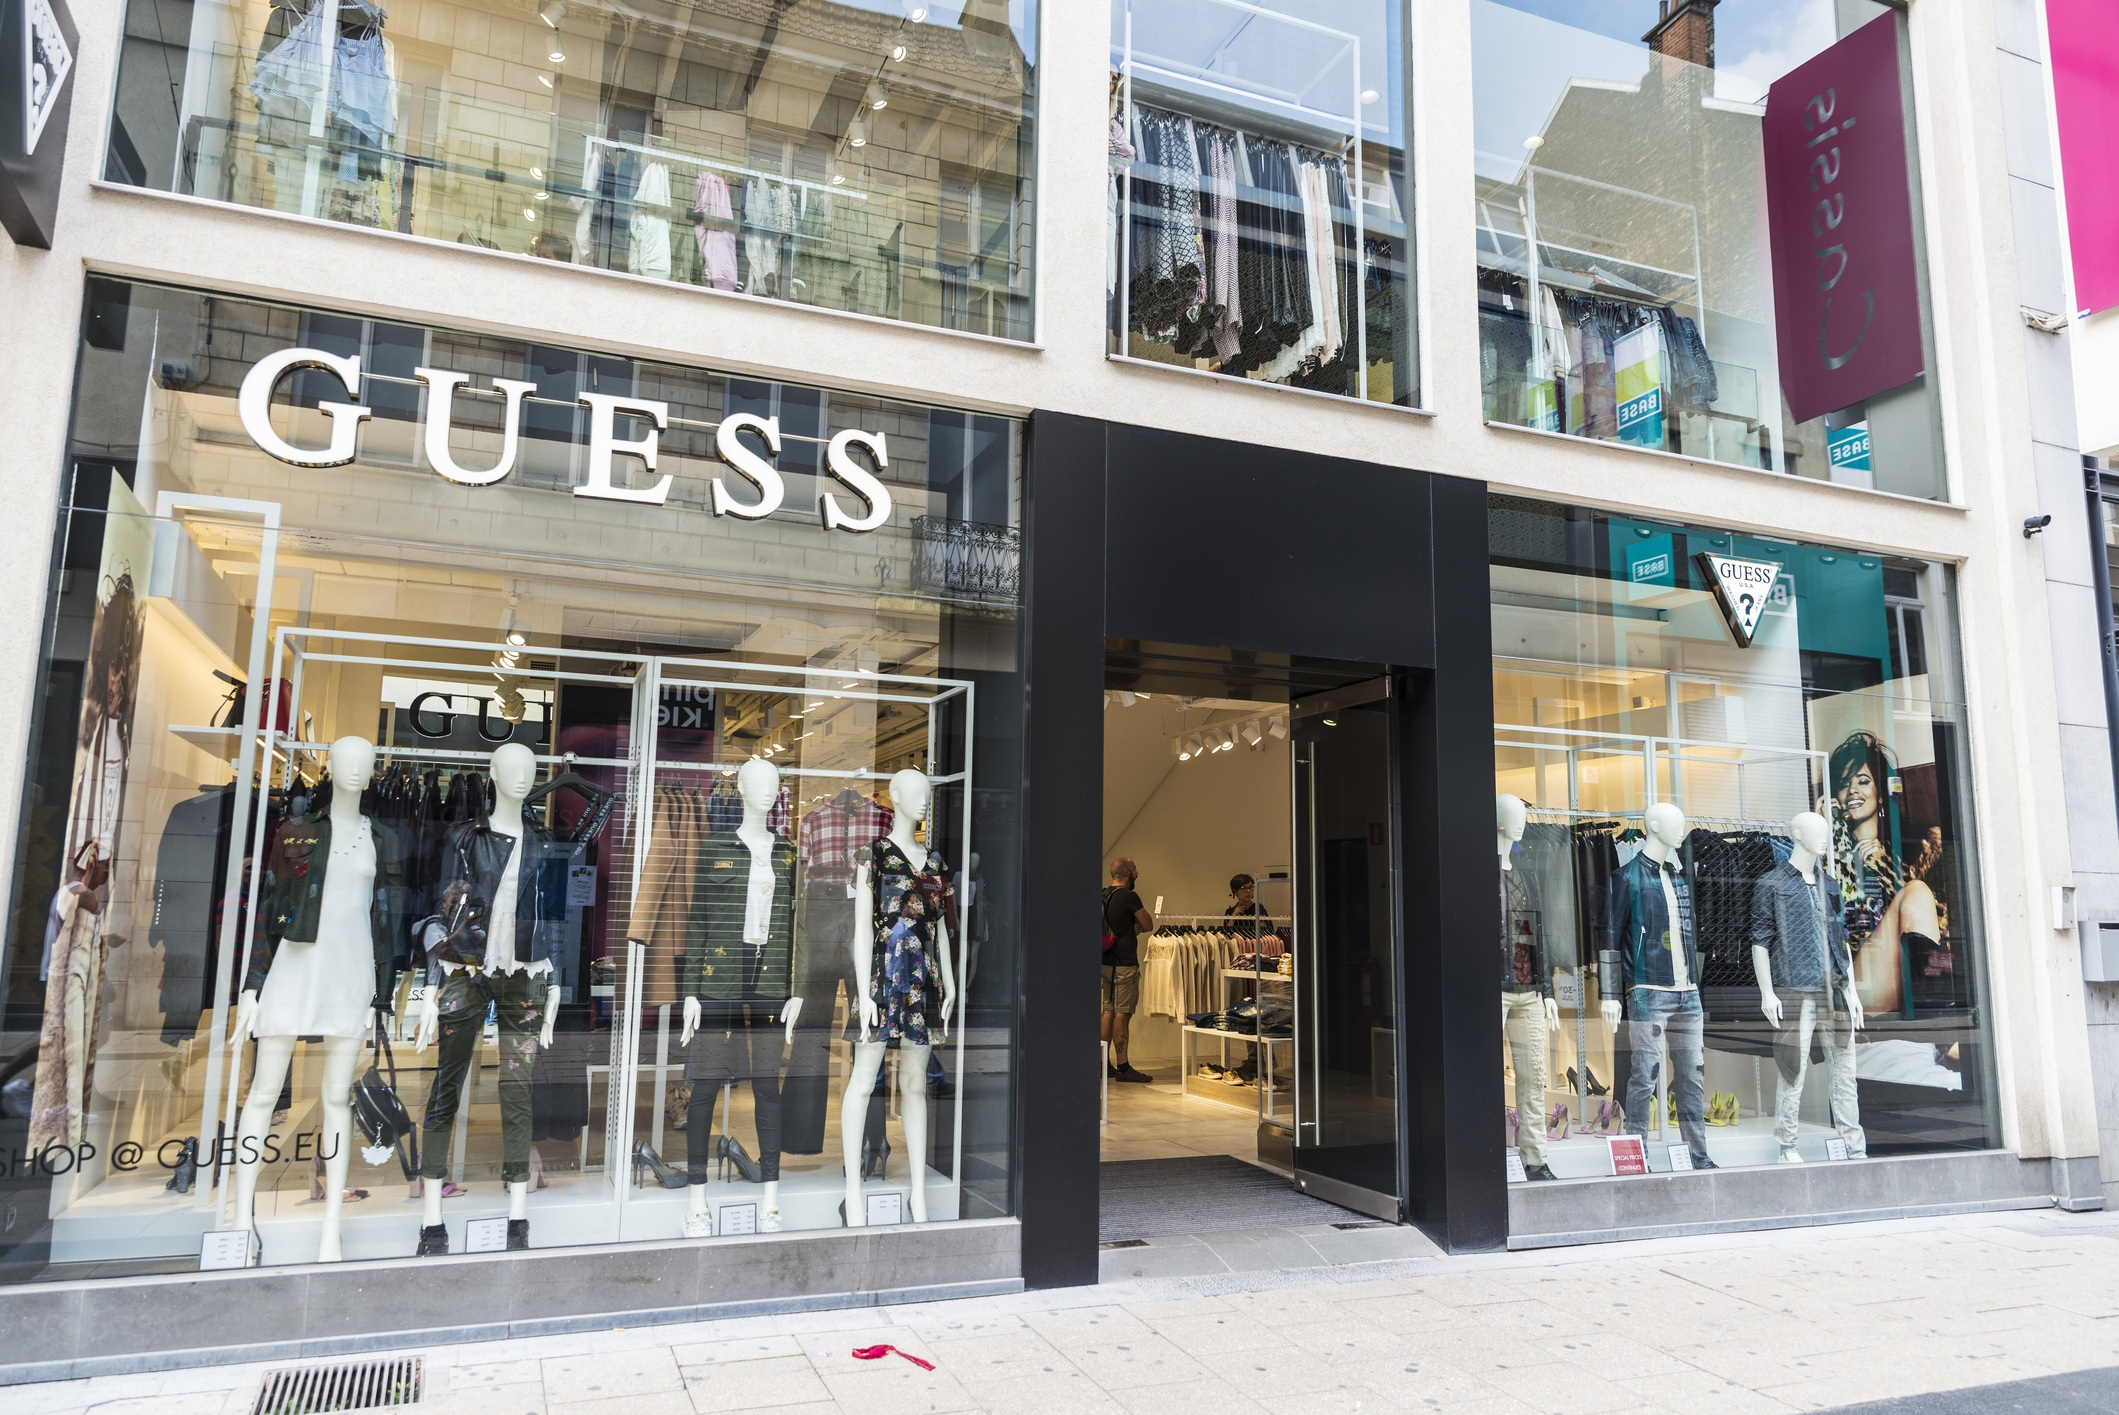 Guess shop in the center of Brussels, Belgium